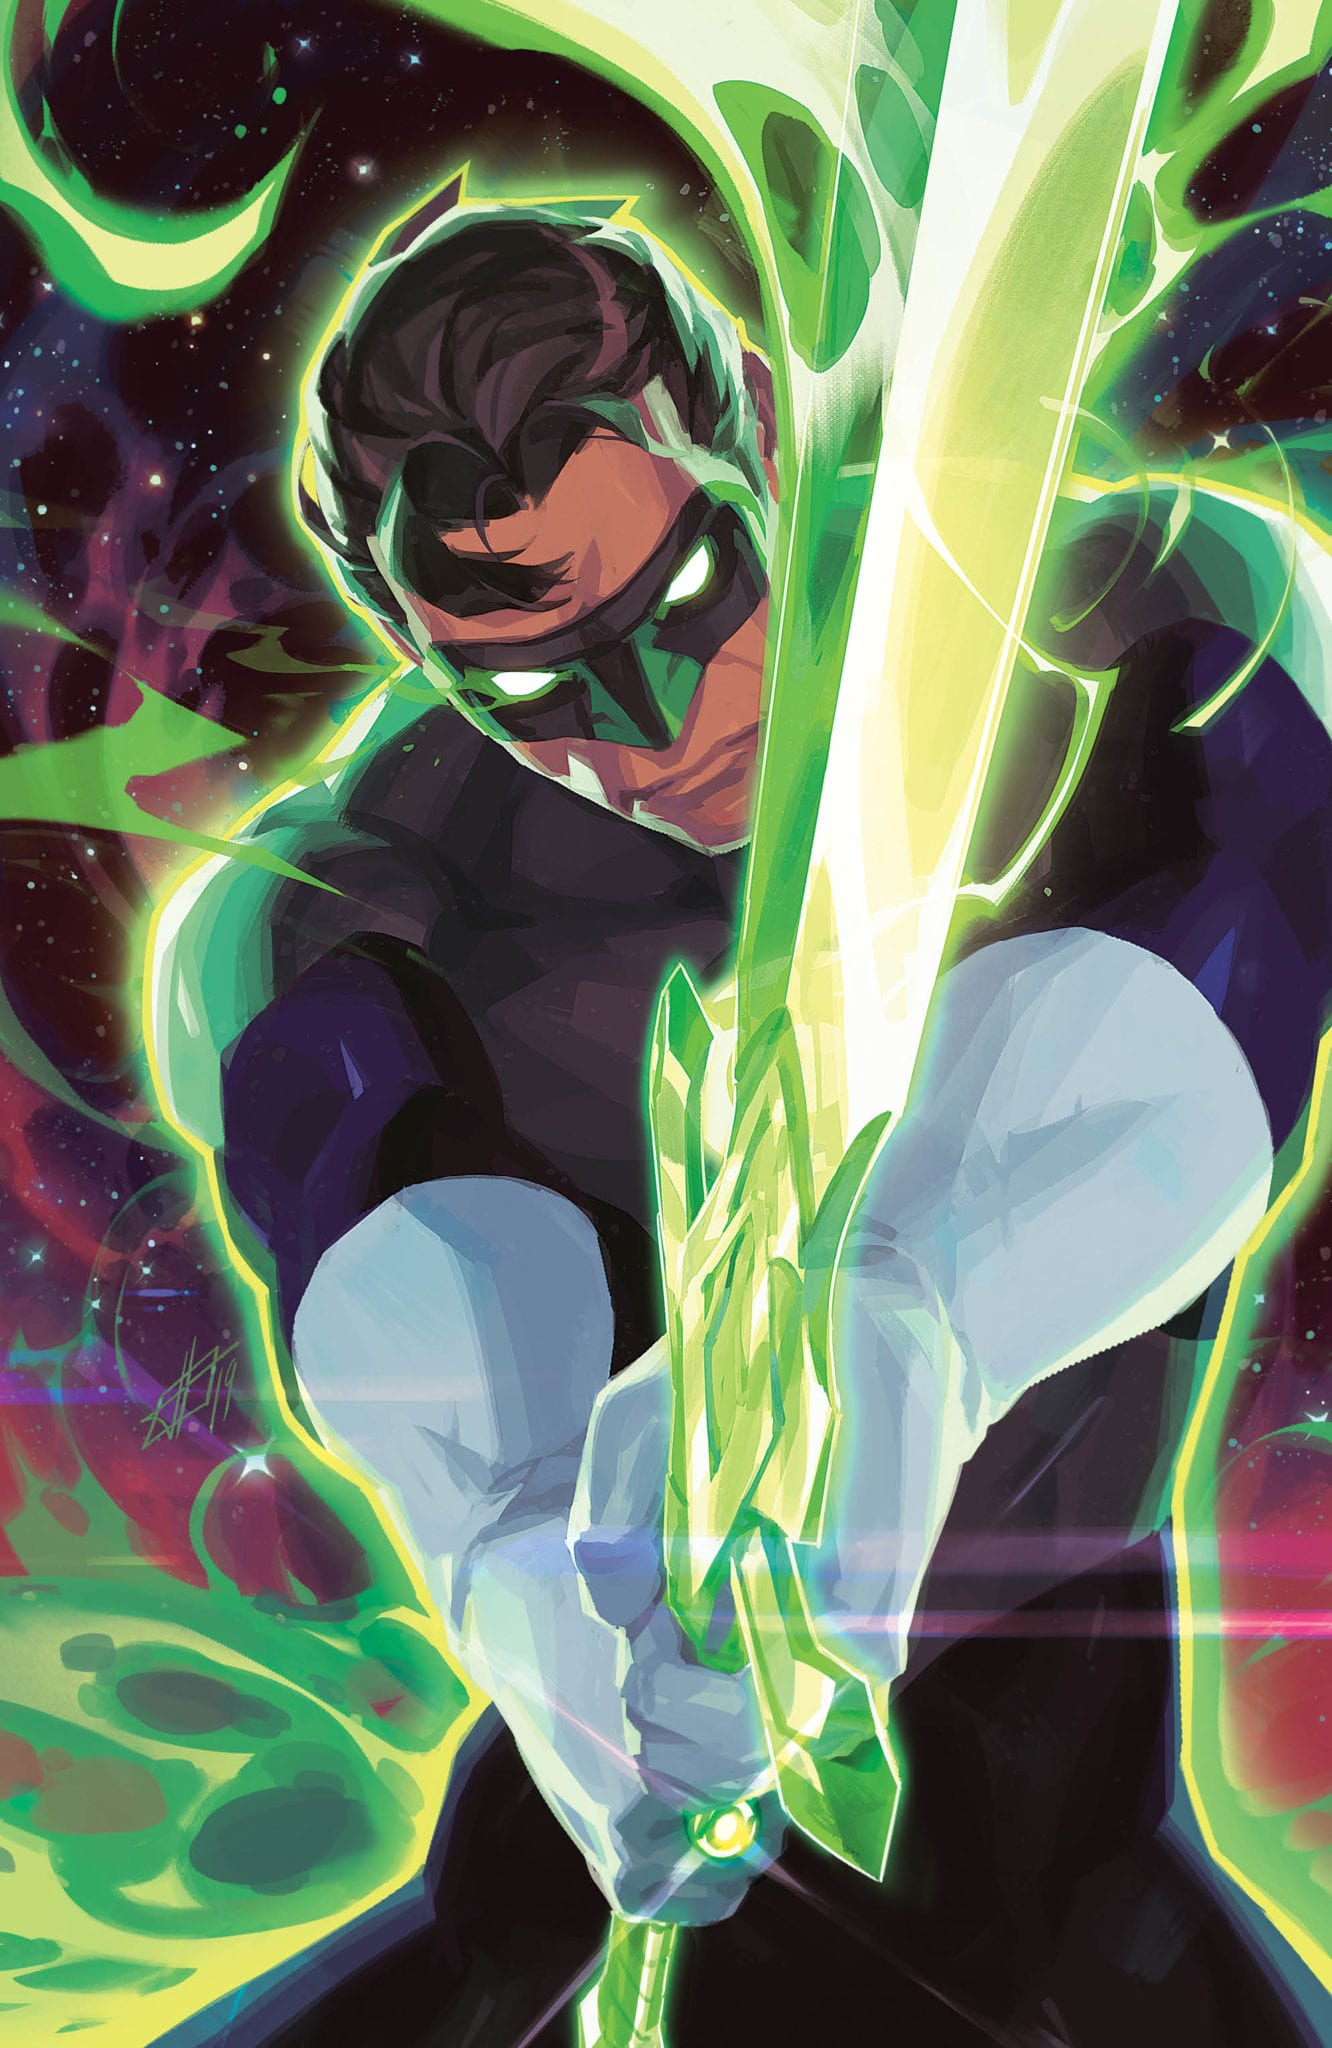 THE GREEN LANTERN #8 variant cover art